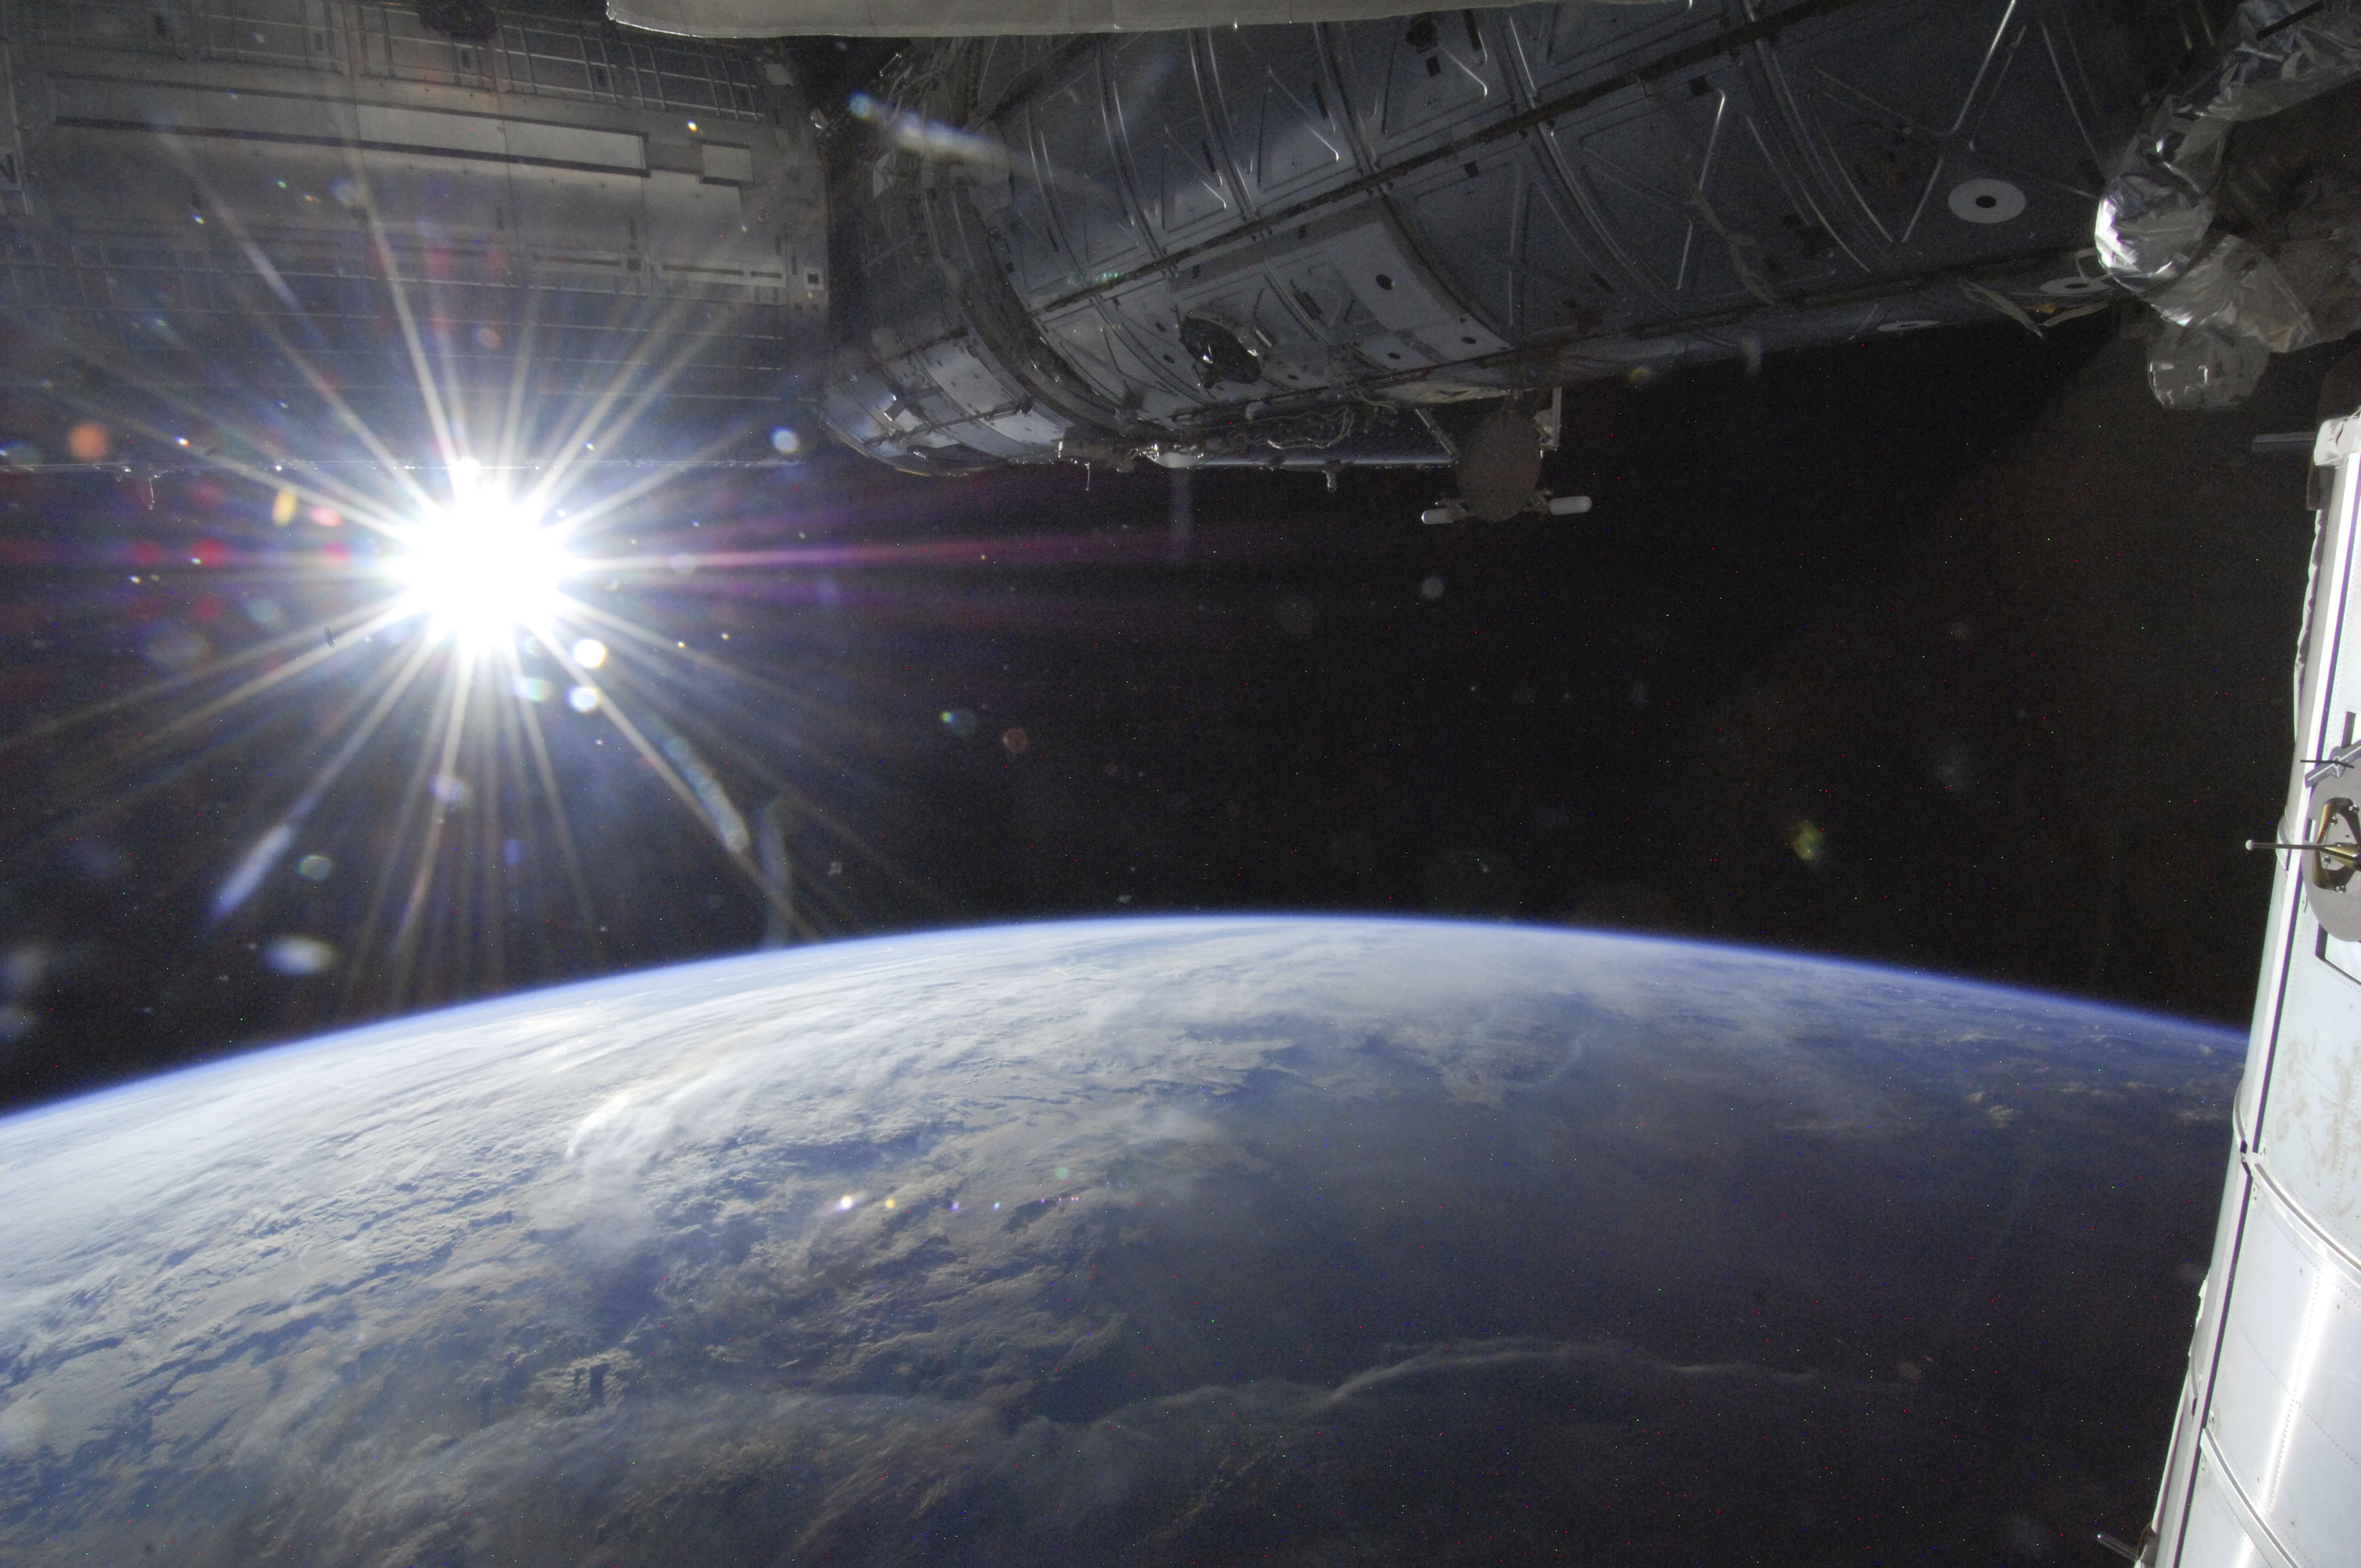 INNOVATION: China wants to build the first solar power station in space